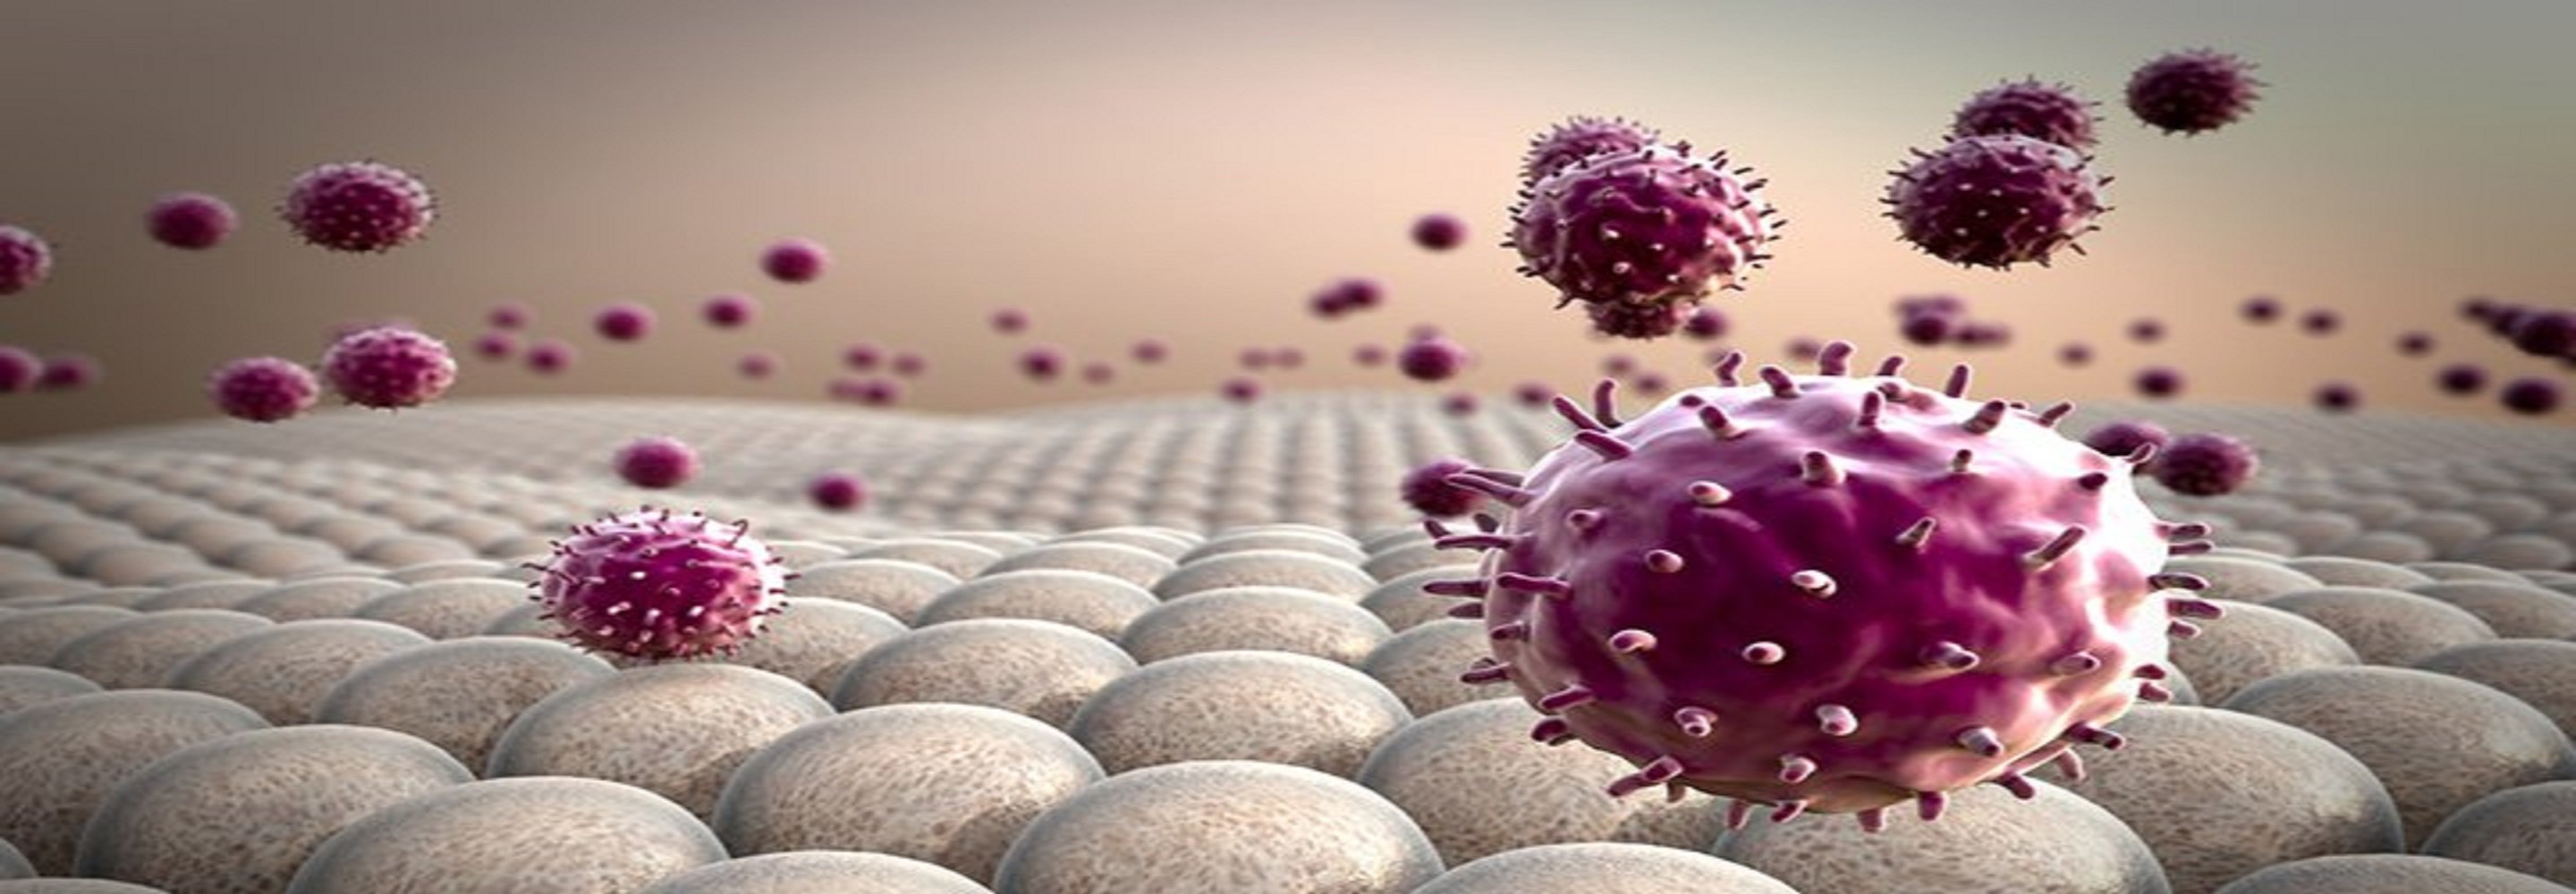 Is Metothrexate so Harmless in Patients with Autoimmune Disorders?